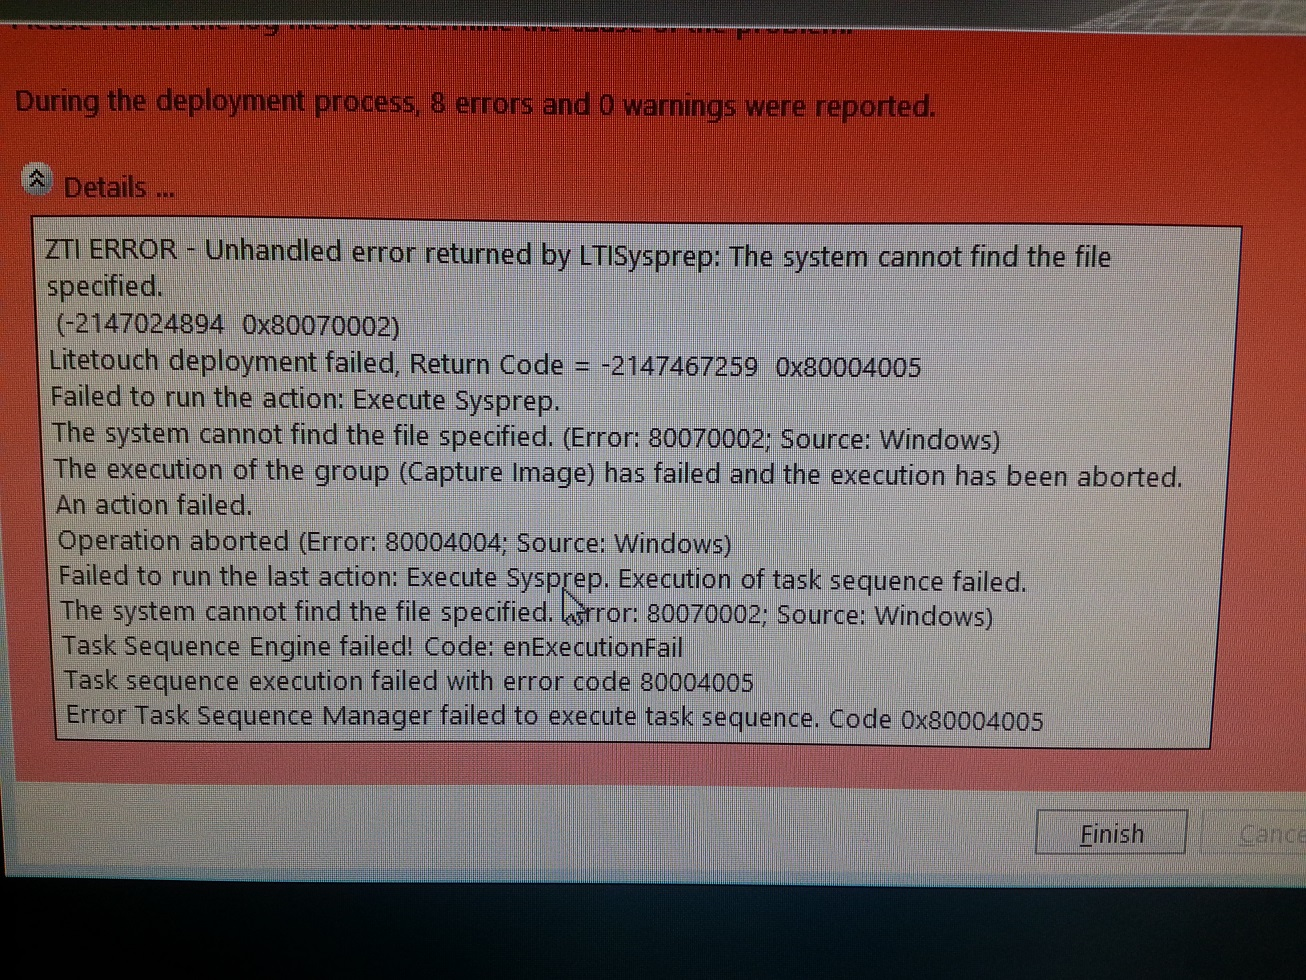 Unhandled error returned by LTIsysprep: The system cannot